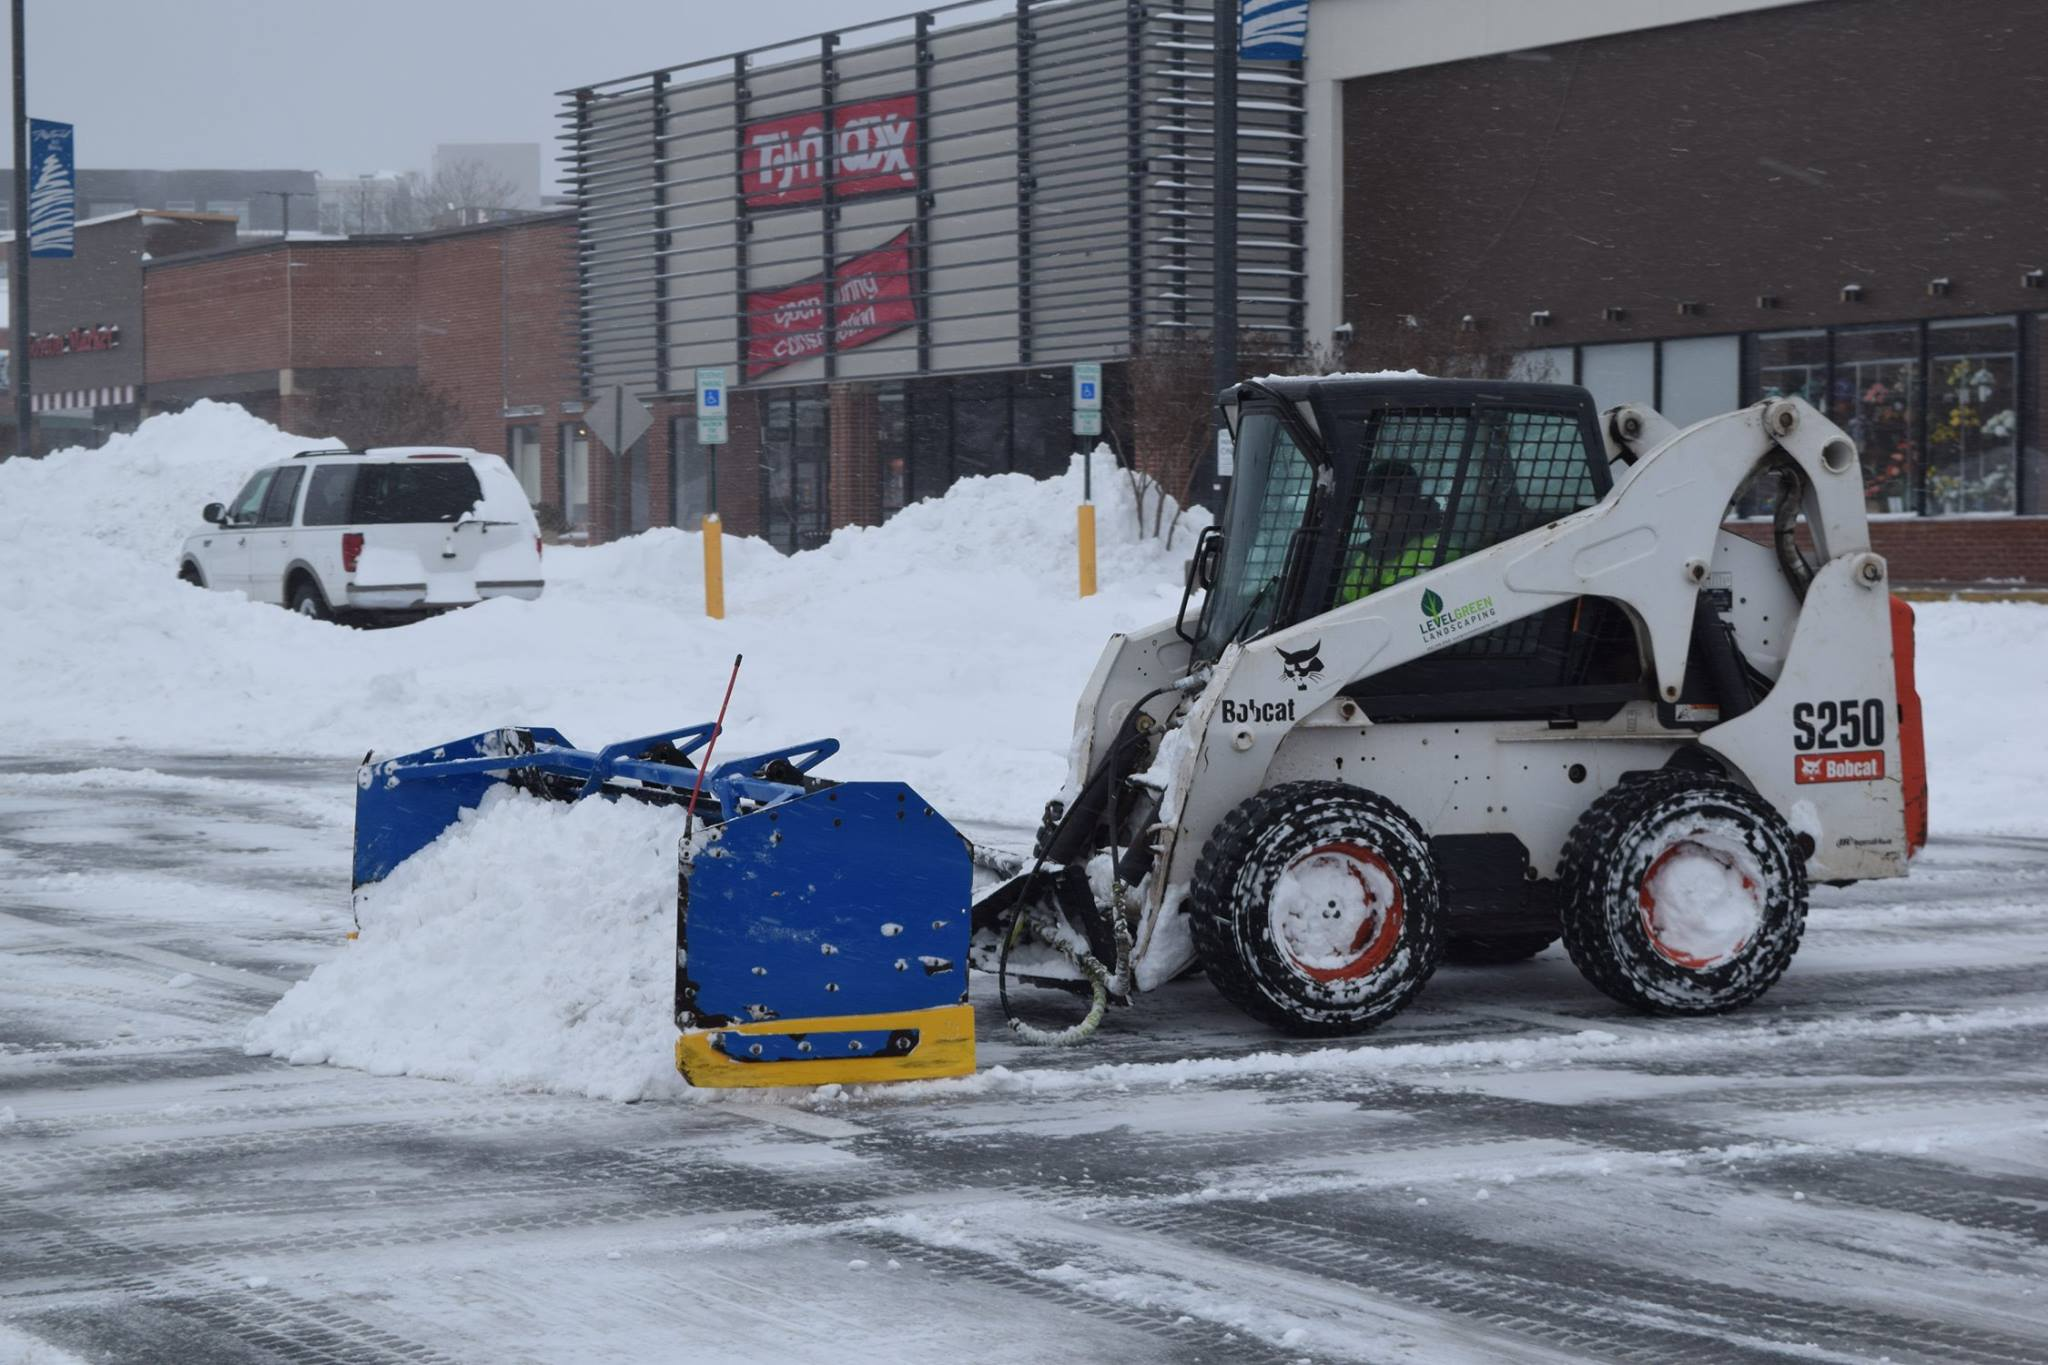 Skidsteer and pusher box used for commercial snow removal